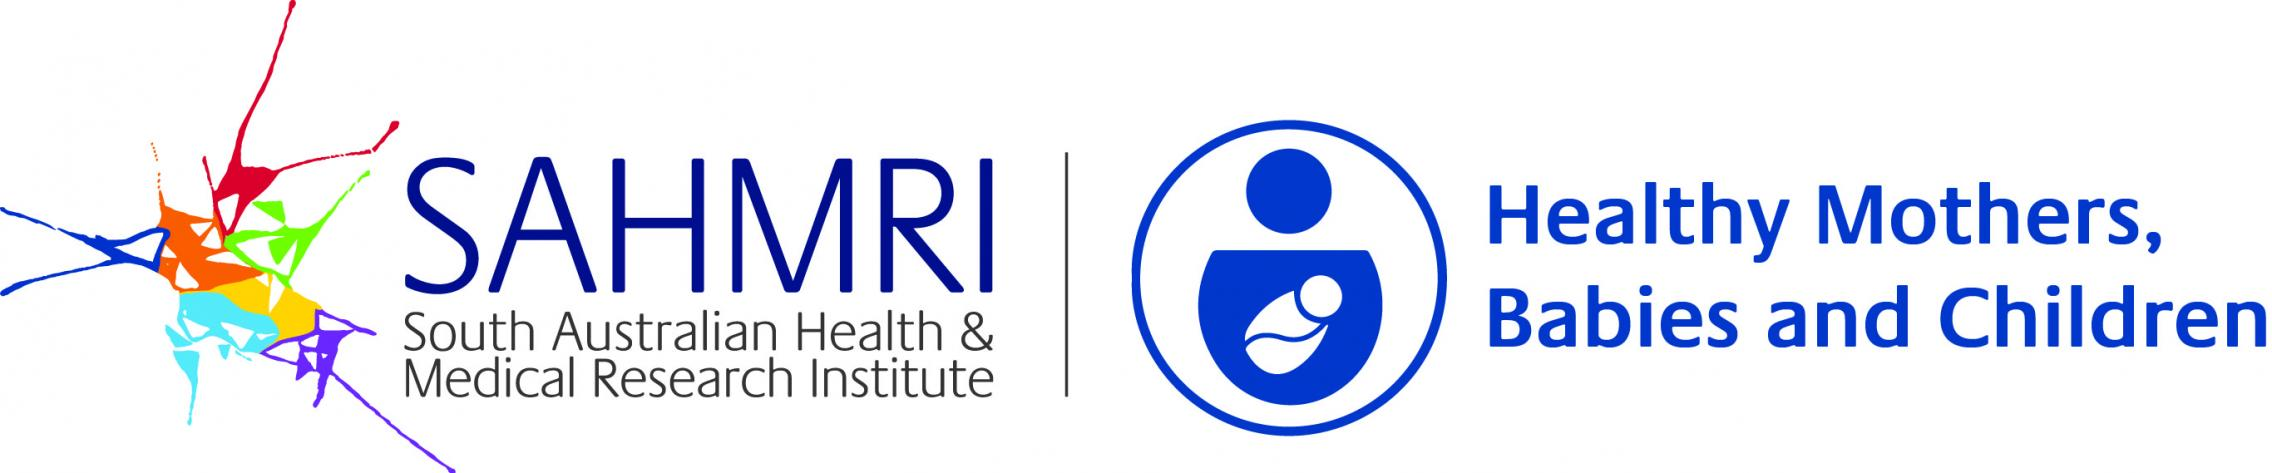 South Australian Health and Medical Research Institute logo